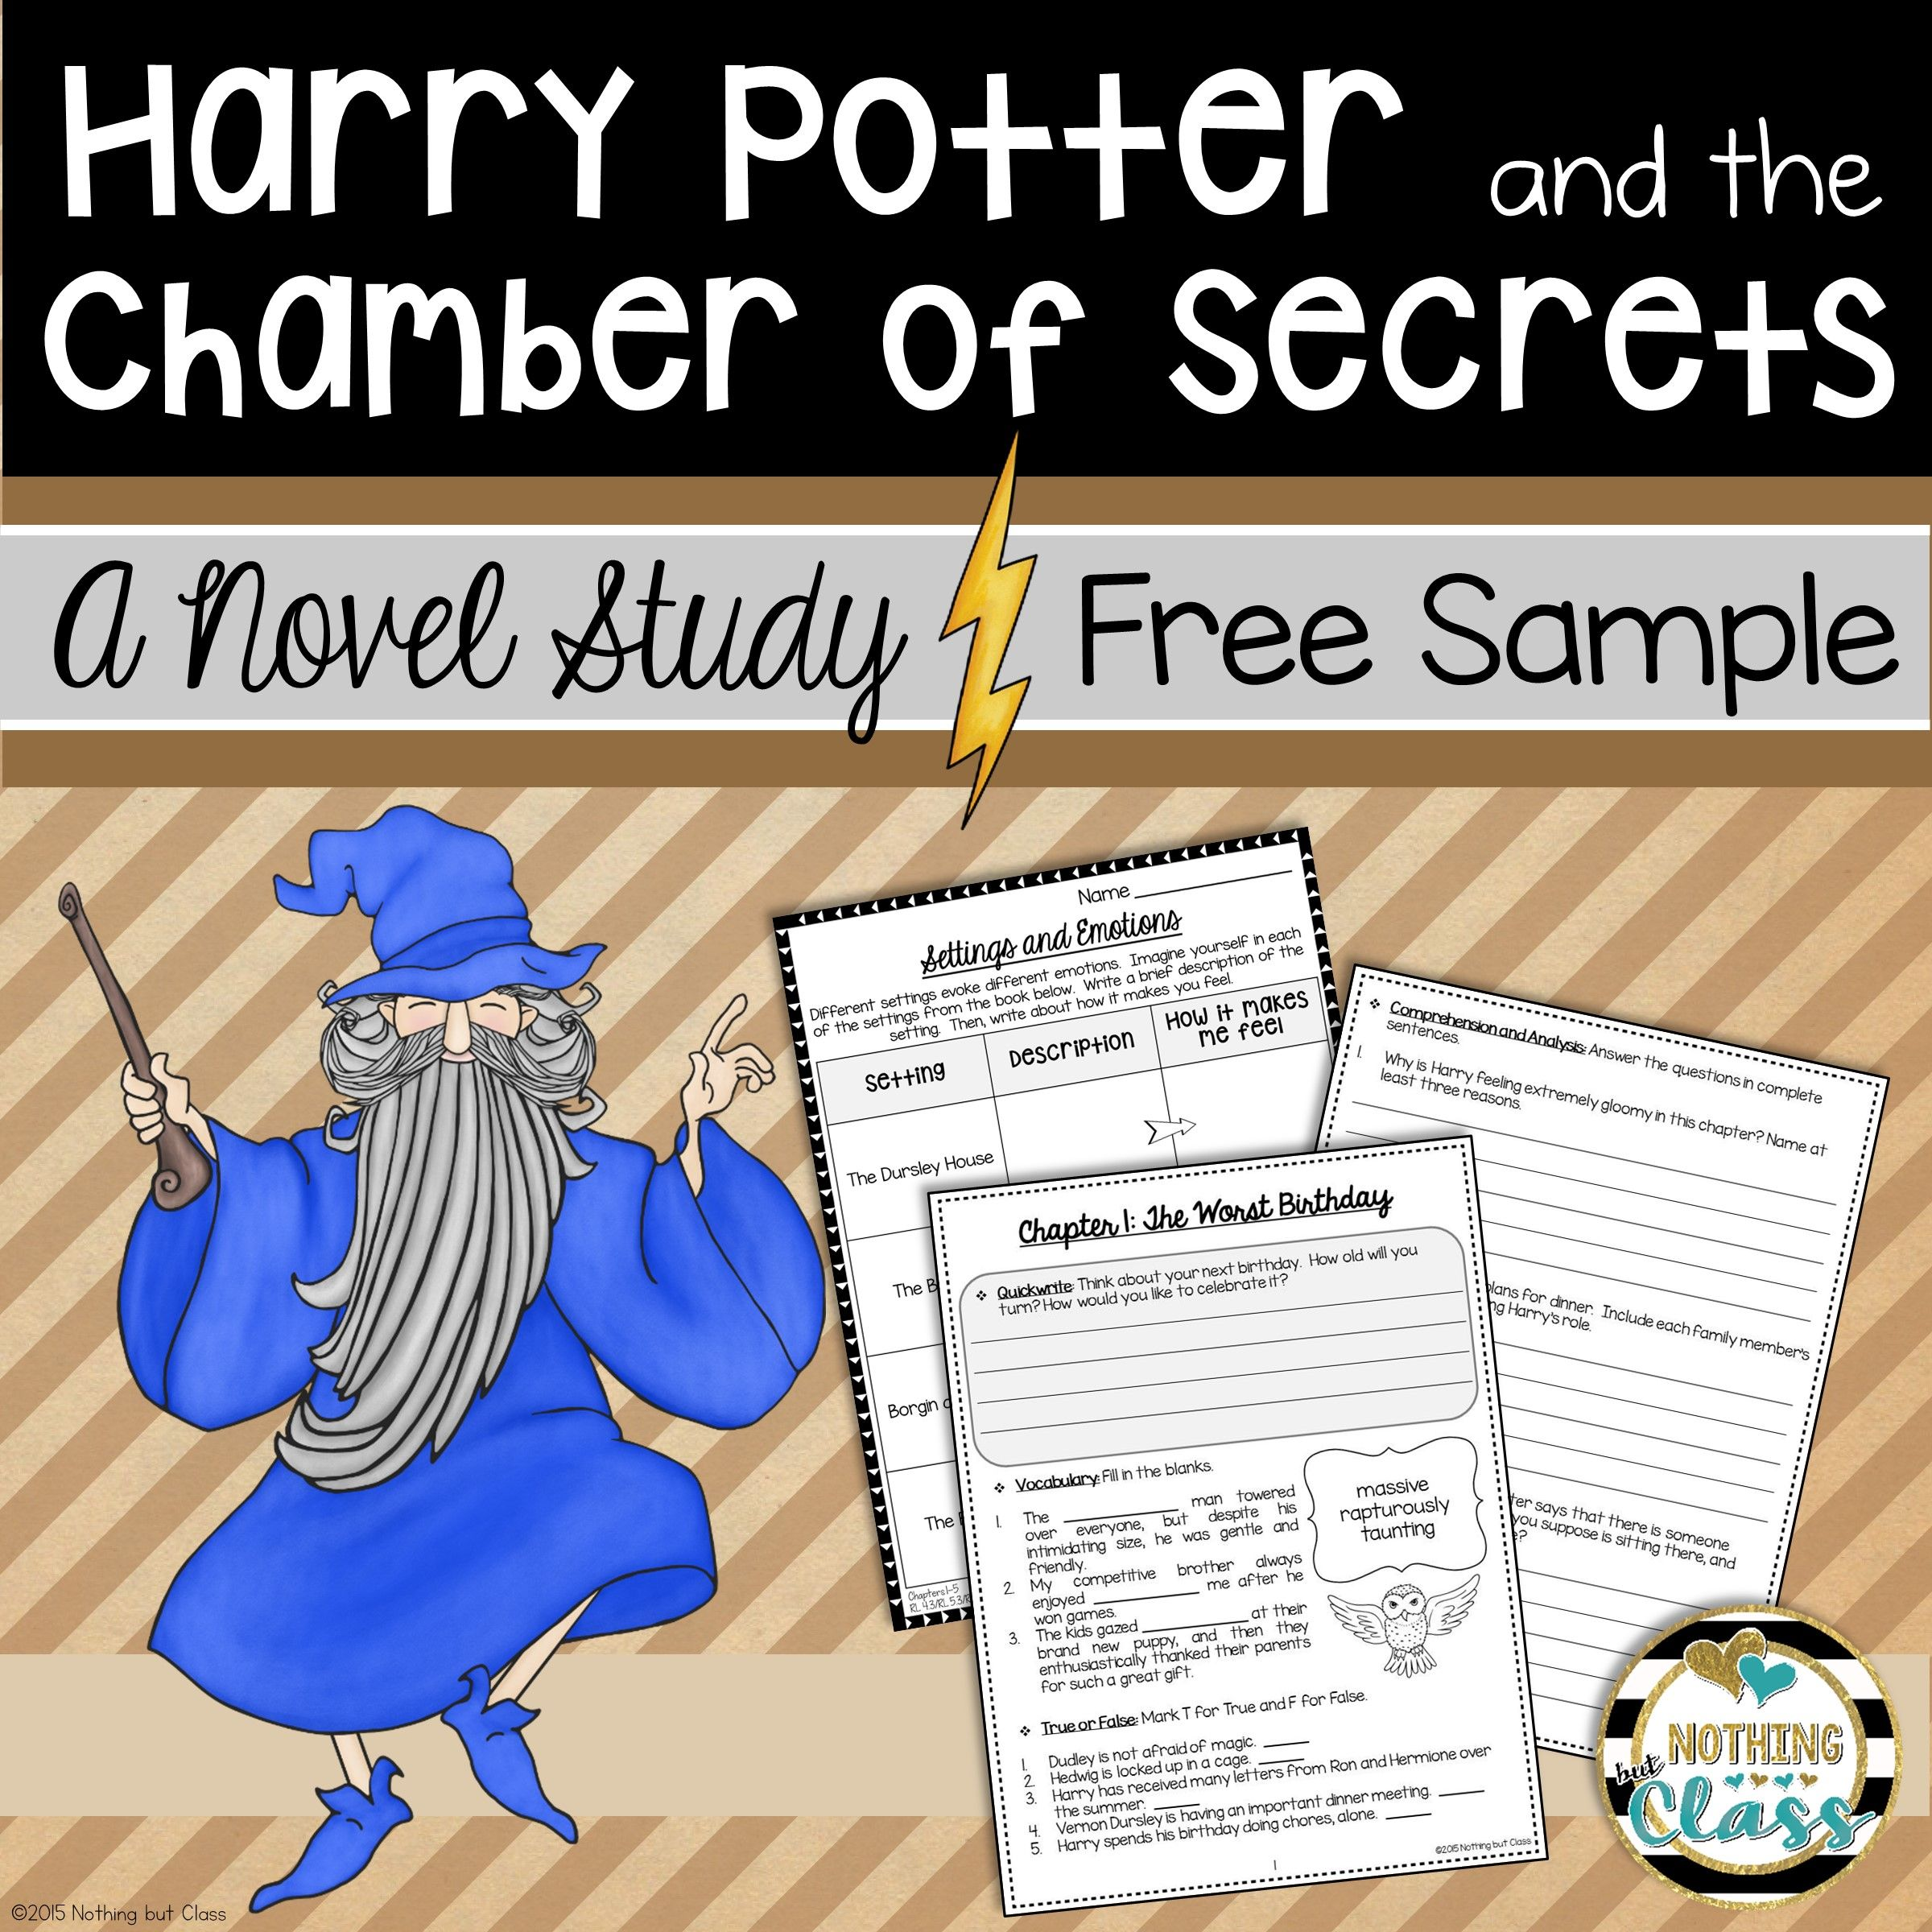 This Is A 7 Page Sample Of My Novel Study For Harry Potter And The Chamber Of Secrets By J K